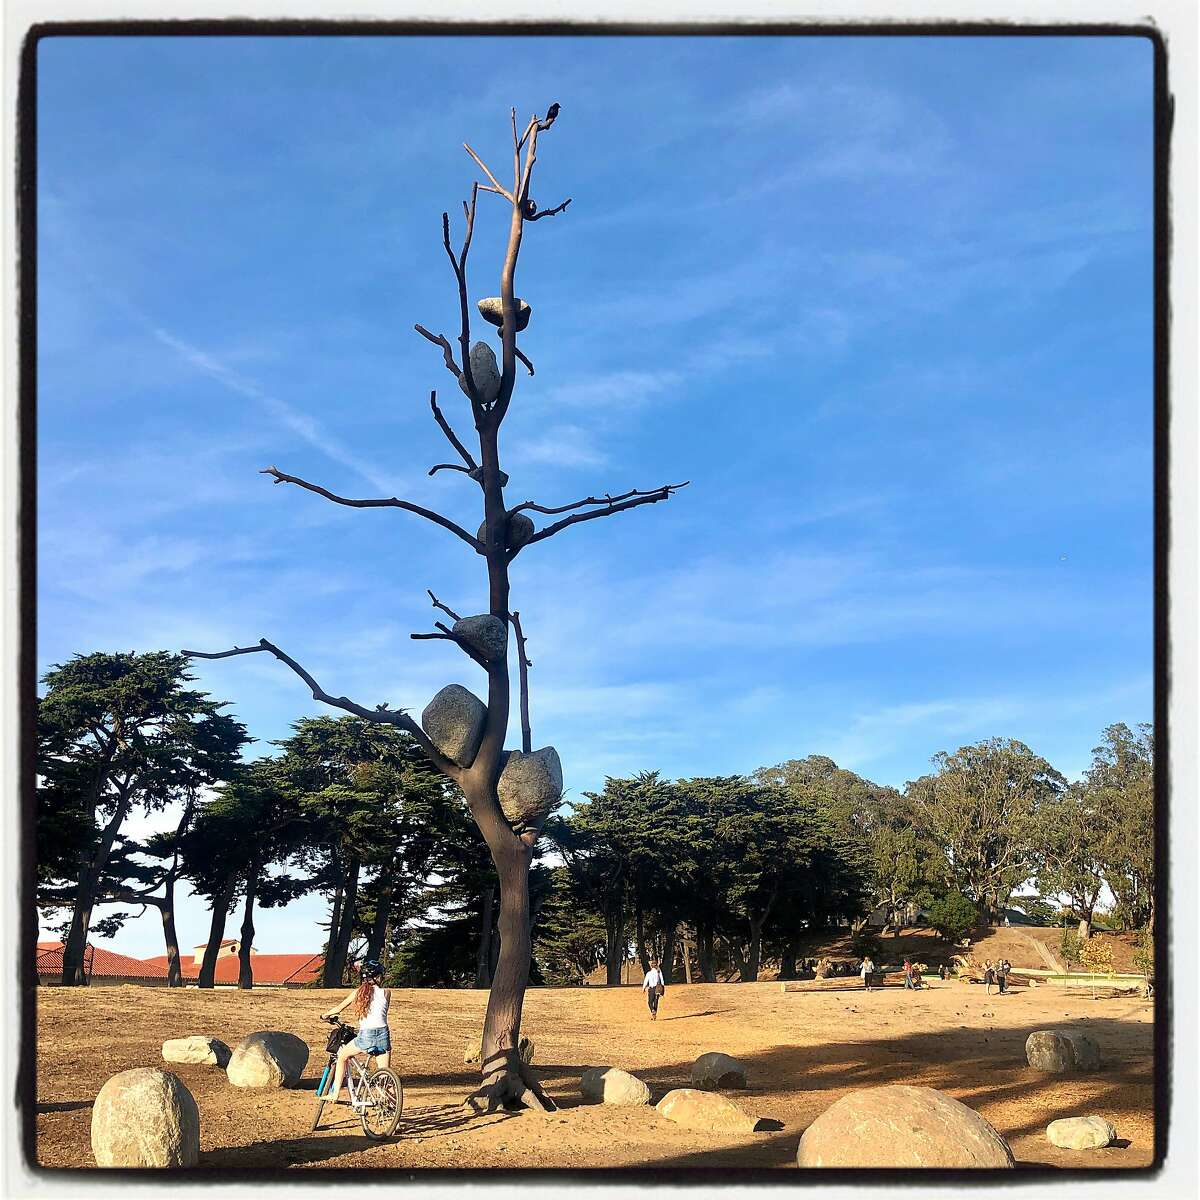 A new Guiseppe Penone sculpture in Fort Mason was unveiled by Gagosiain San Francisco. Oct. 24, 2019.